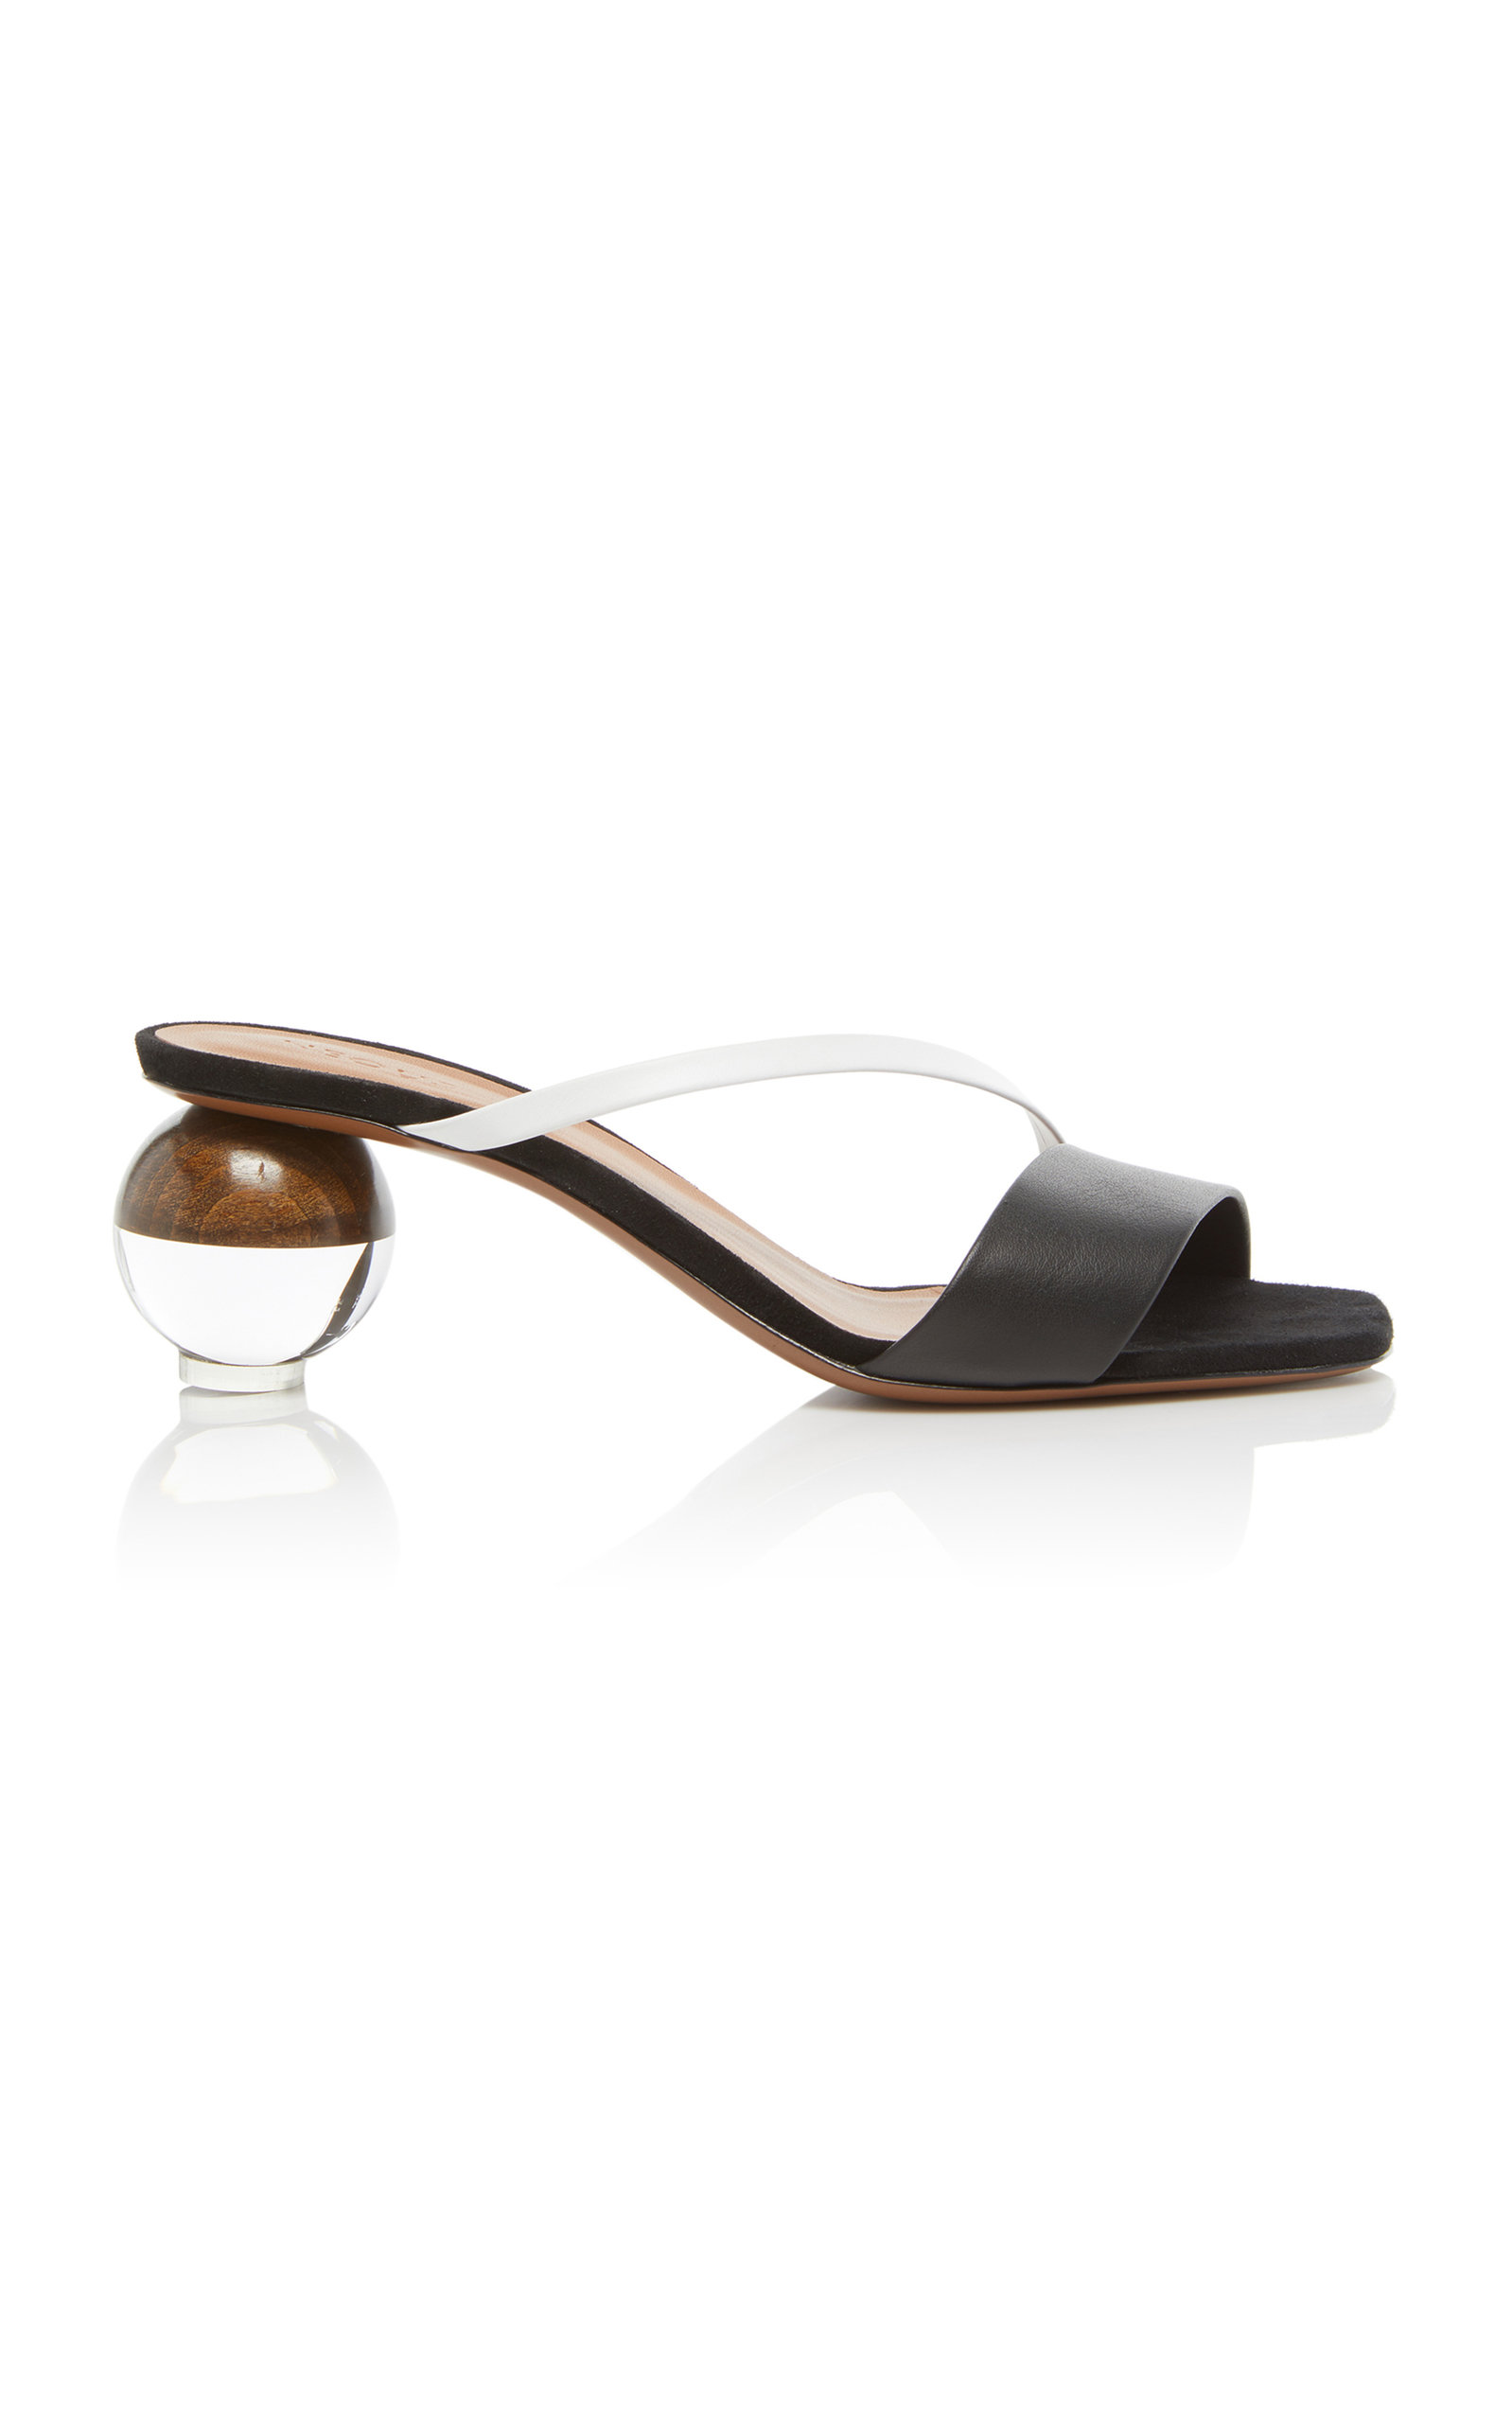 NEOUS Gia Two-Tone Leather Sandals in Black